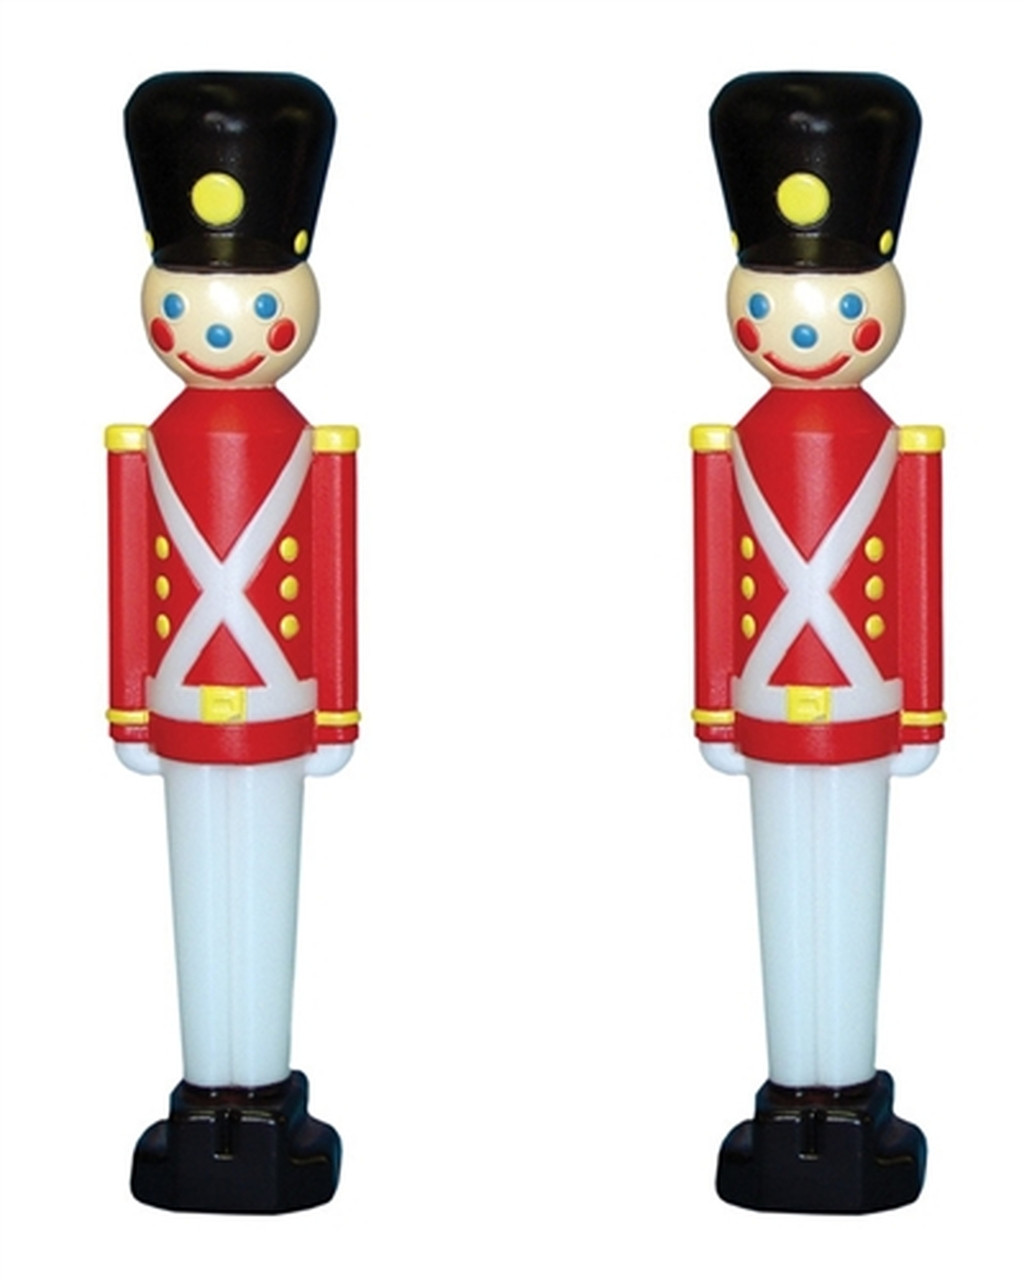 Outdoor Toy Soldier Christmas Decorations.31 Toy Soldier With Black Hat Plastic Blow Mold Outdoor Set Of 2 Christmas Decoration 76440